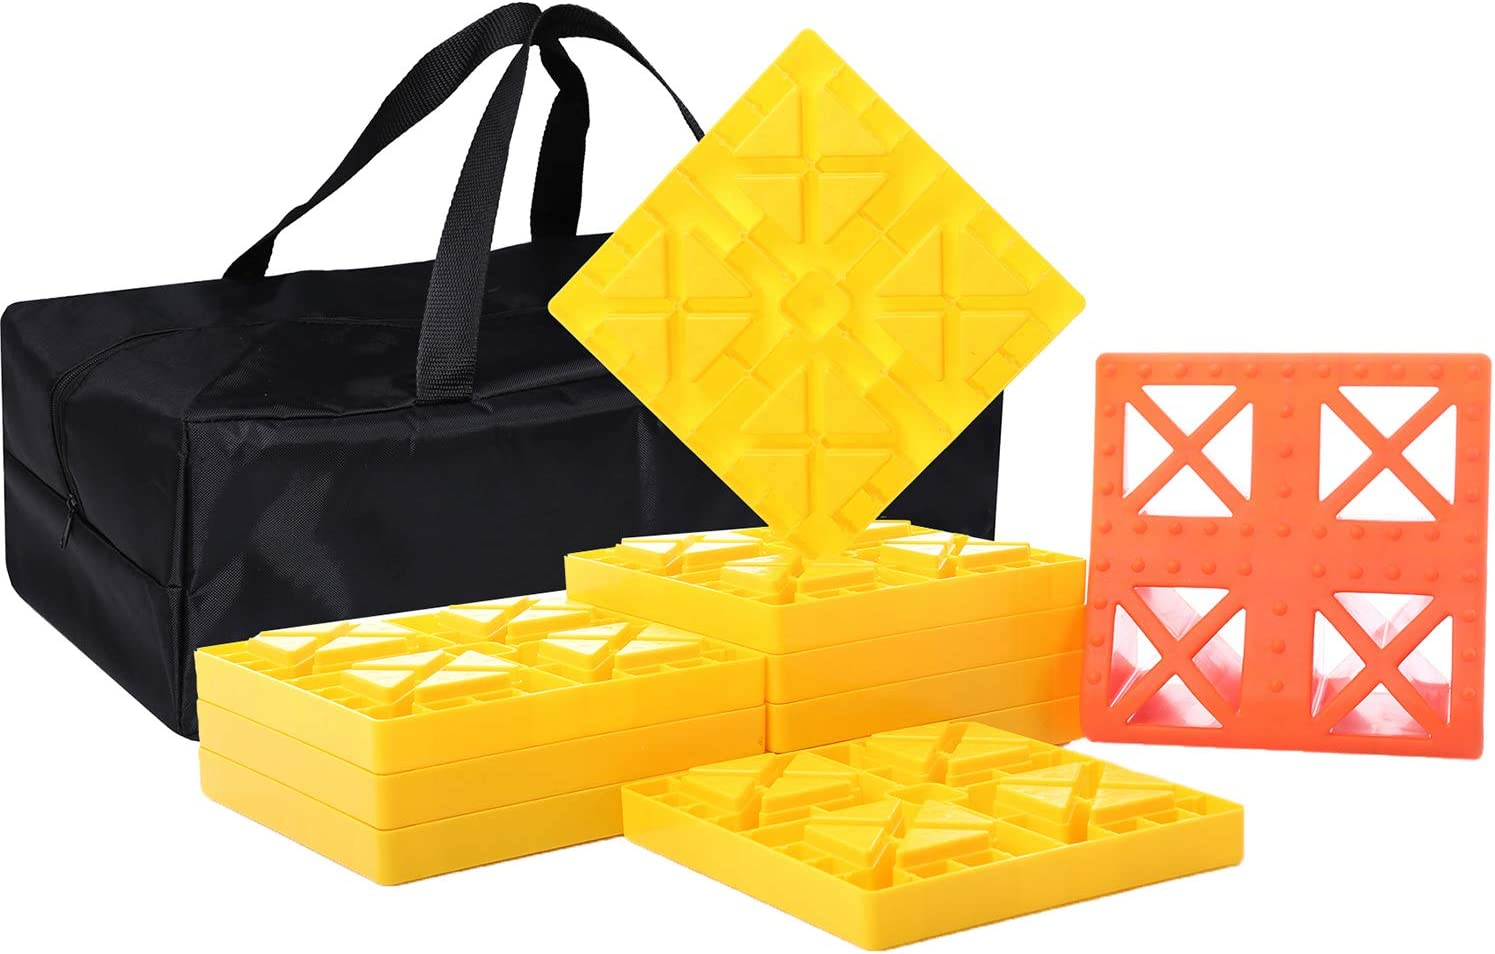 Heavy Duty Camper Leveling Blocks and Chocks Anti-Slip Pads Design One Top Tire Wheel Chock and 9 Pack Interlocking Leveling Blocks with Carrying Bag Homeon Wheels RV Leveling Blocks WH-303